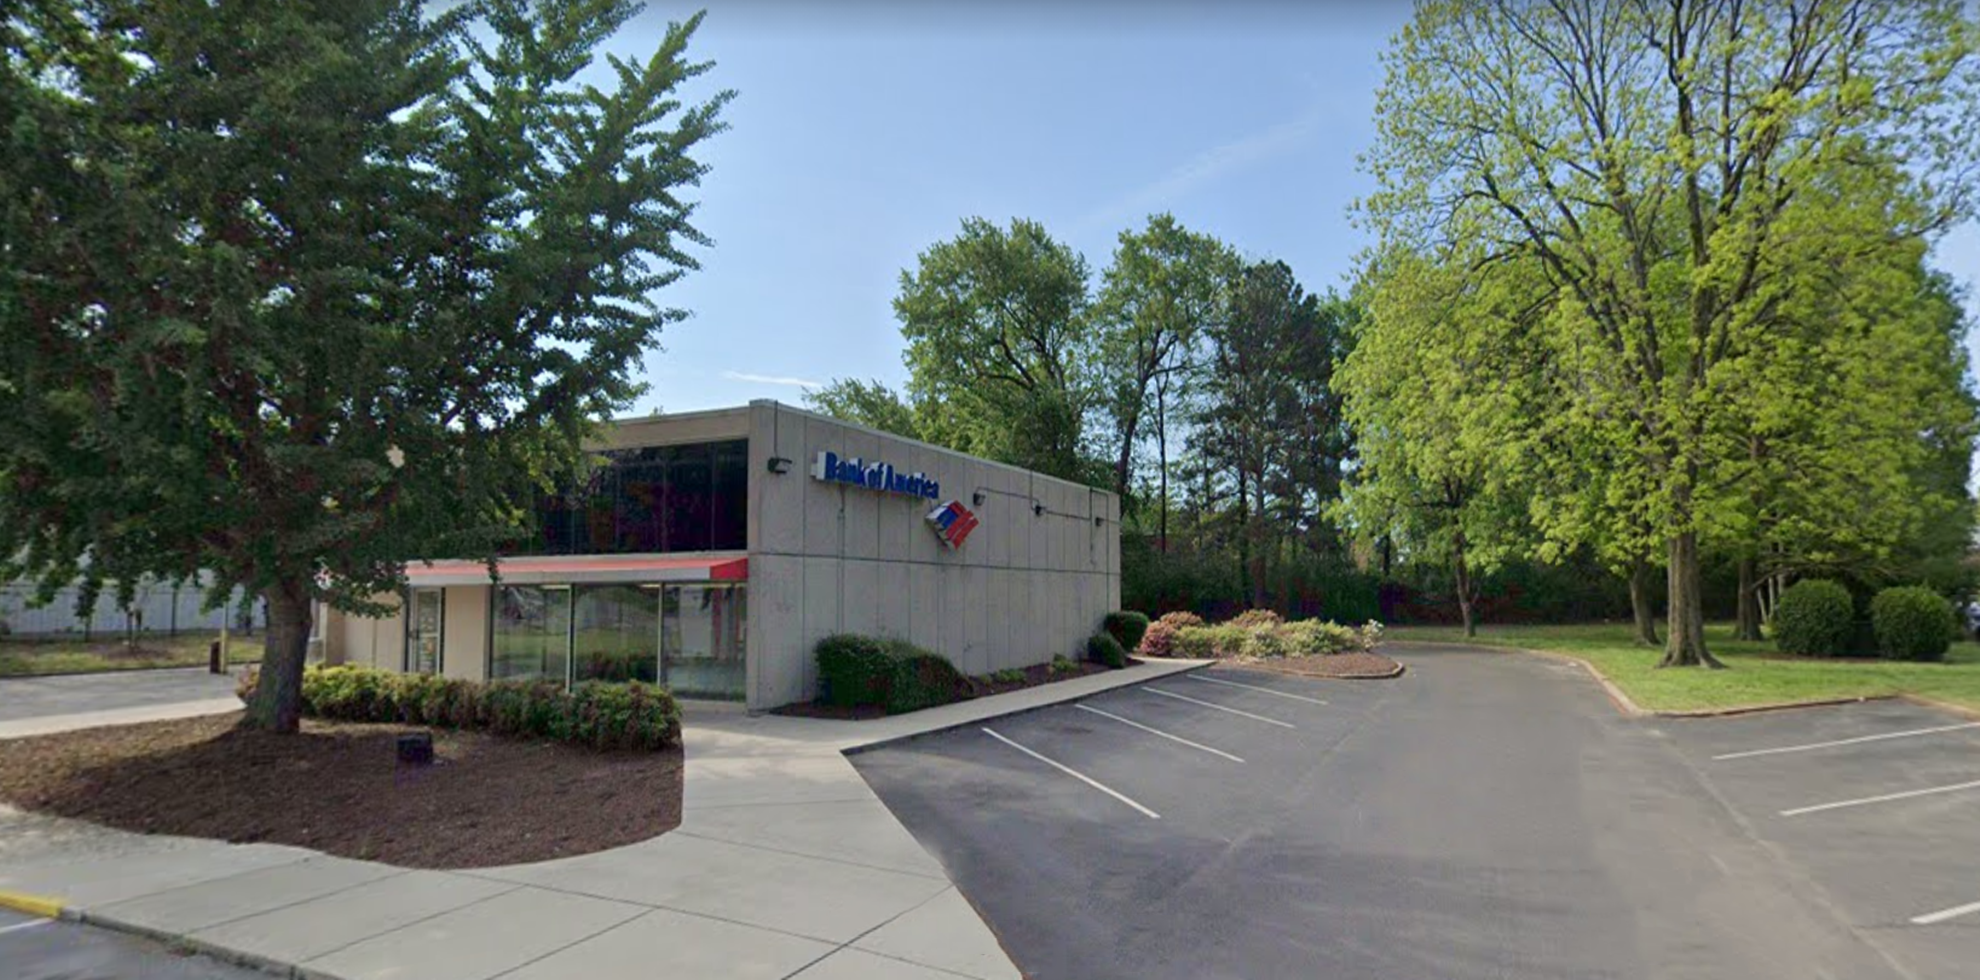 Bank of America financial center with drive-thru ATM | 3741 Winchester Rd, Memphis, TN 38118